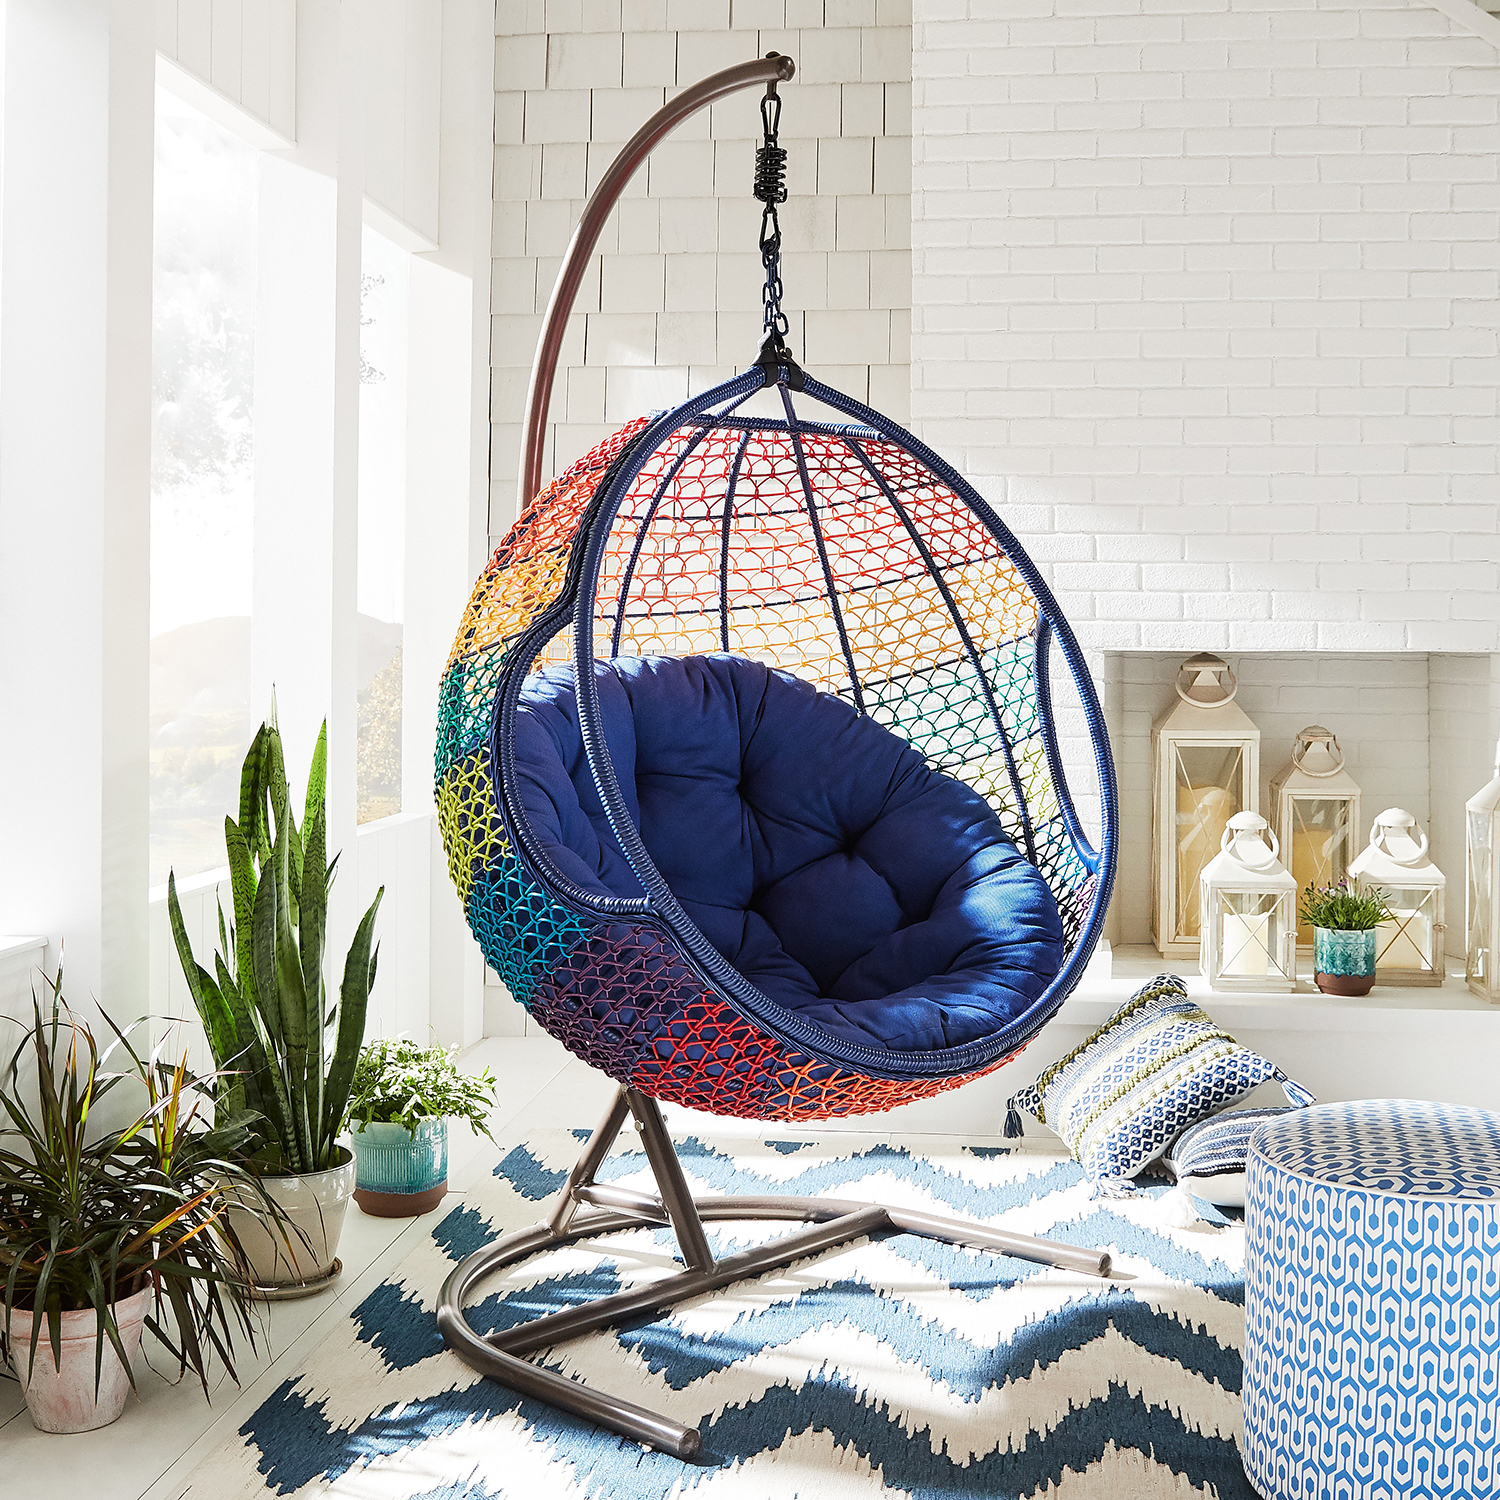 Swingasan® Rainbow Ombre Hanging Chair